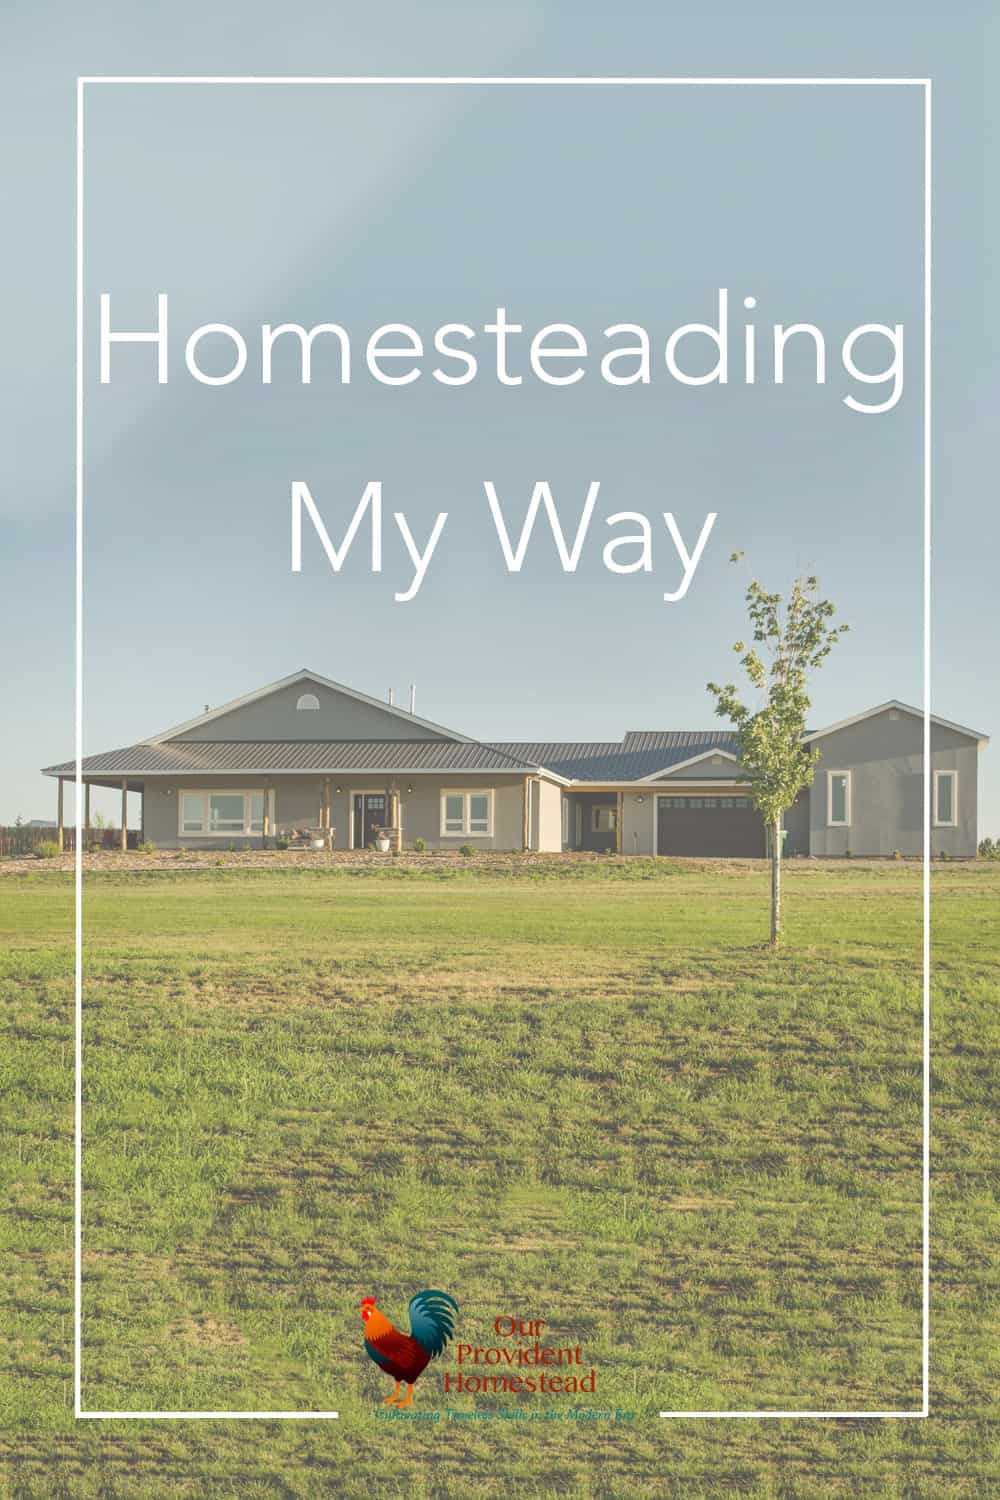 So how am I going to take this idea of homesteading and make it my own? Let me tell you my definition of homesteading for our family. Homesteading | Definition of Homesteader